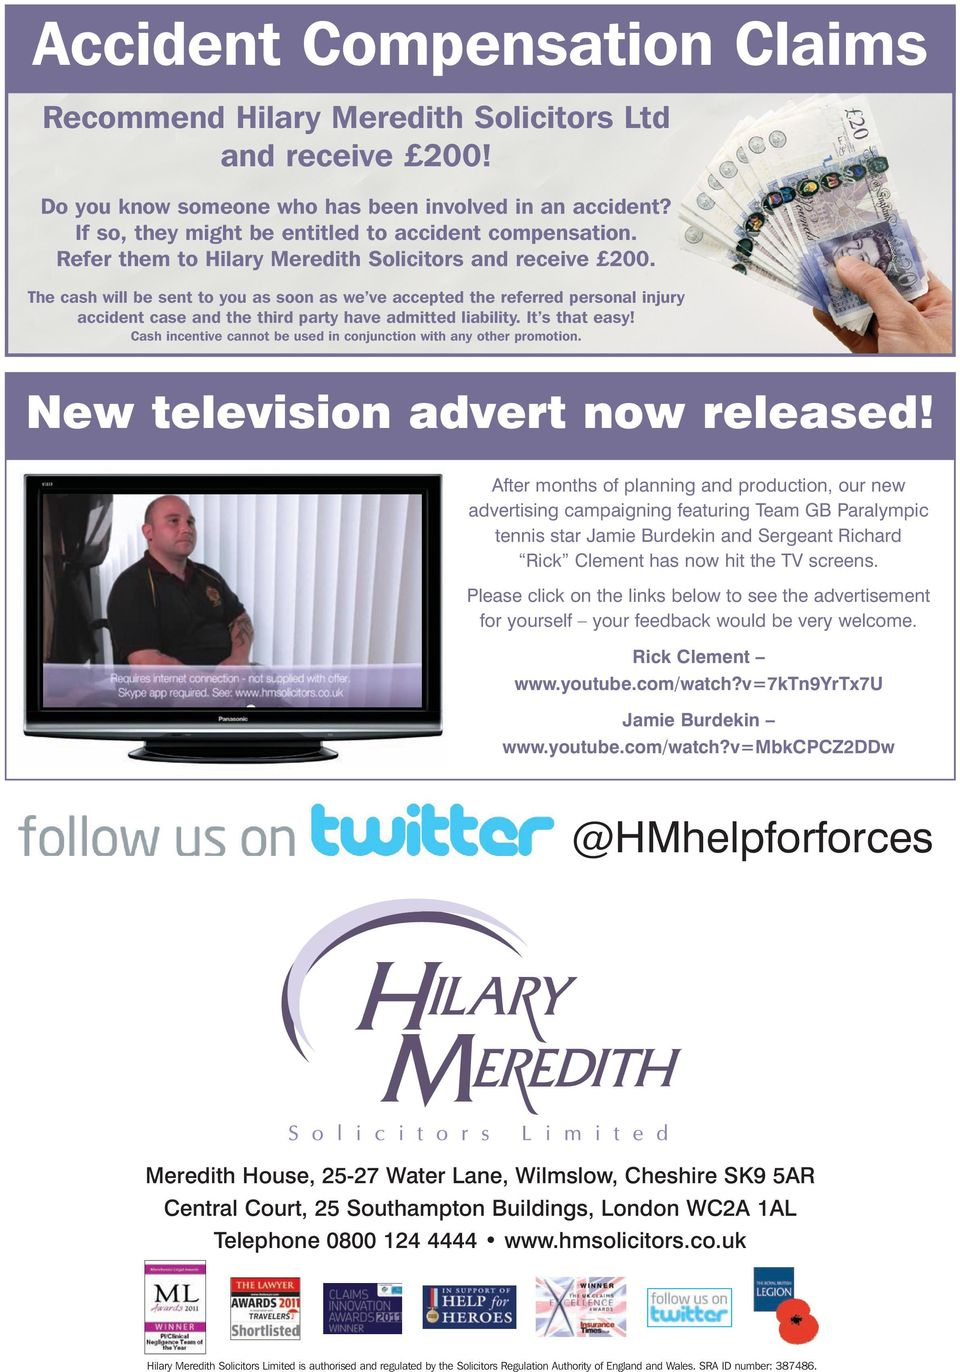 It s that easy! Cash incentive cannot be used in conjunction with any other promotion. New television advert now released!